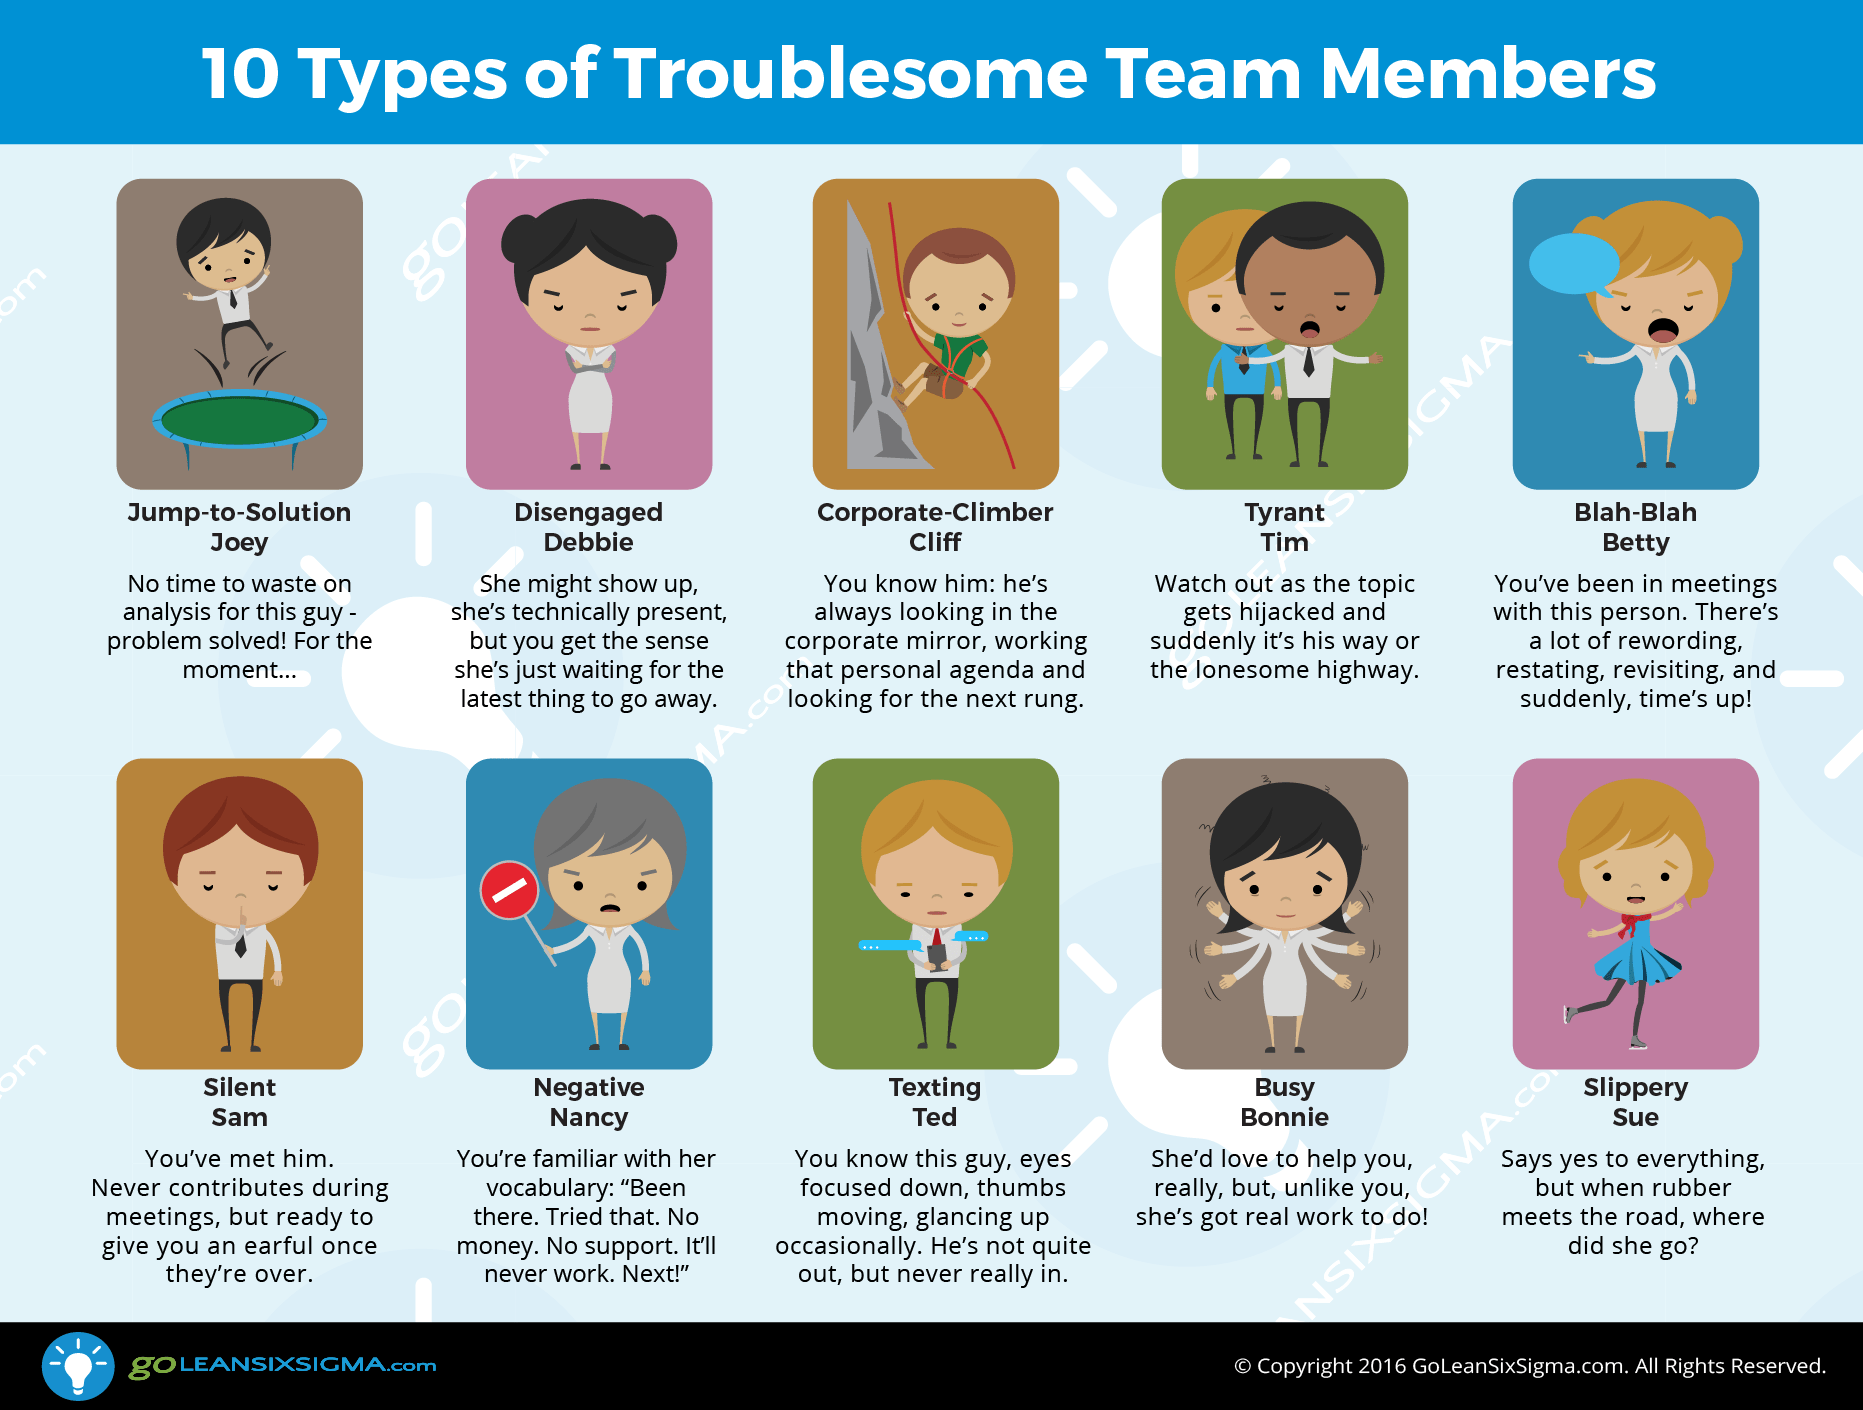 10 Types Troublesome Team Members Goleansixsigma Com